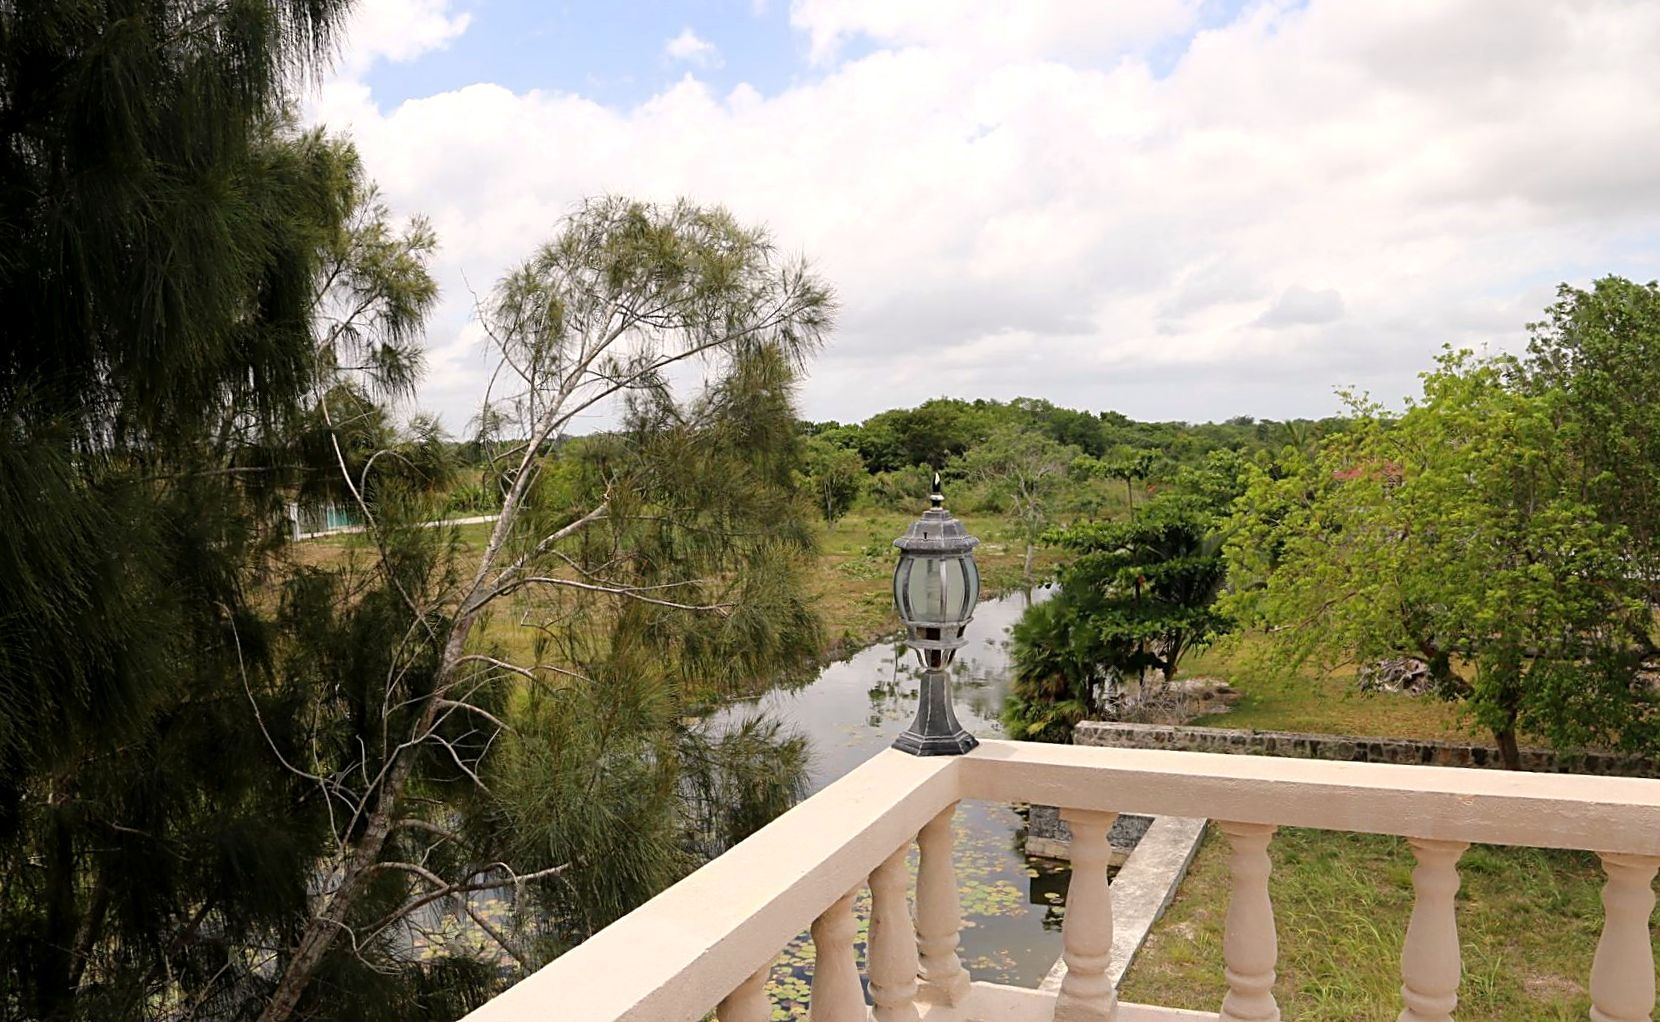 Additional photo for property listing at Bayshore Drive Corozal, Corozal Belize